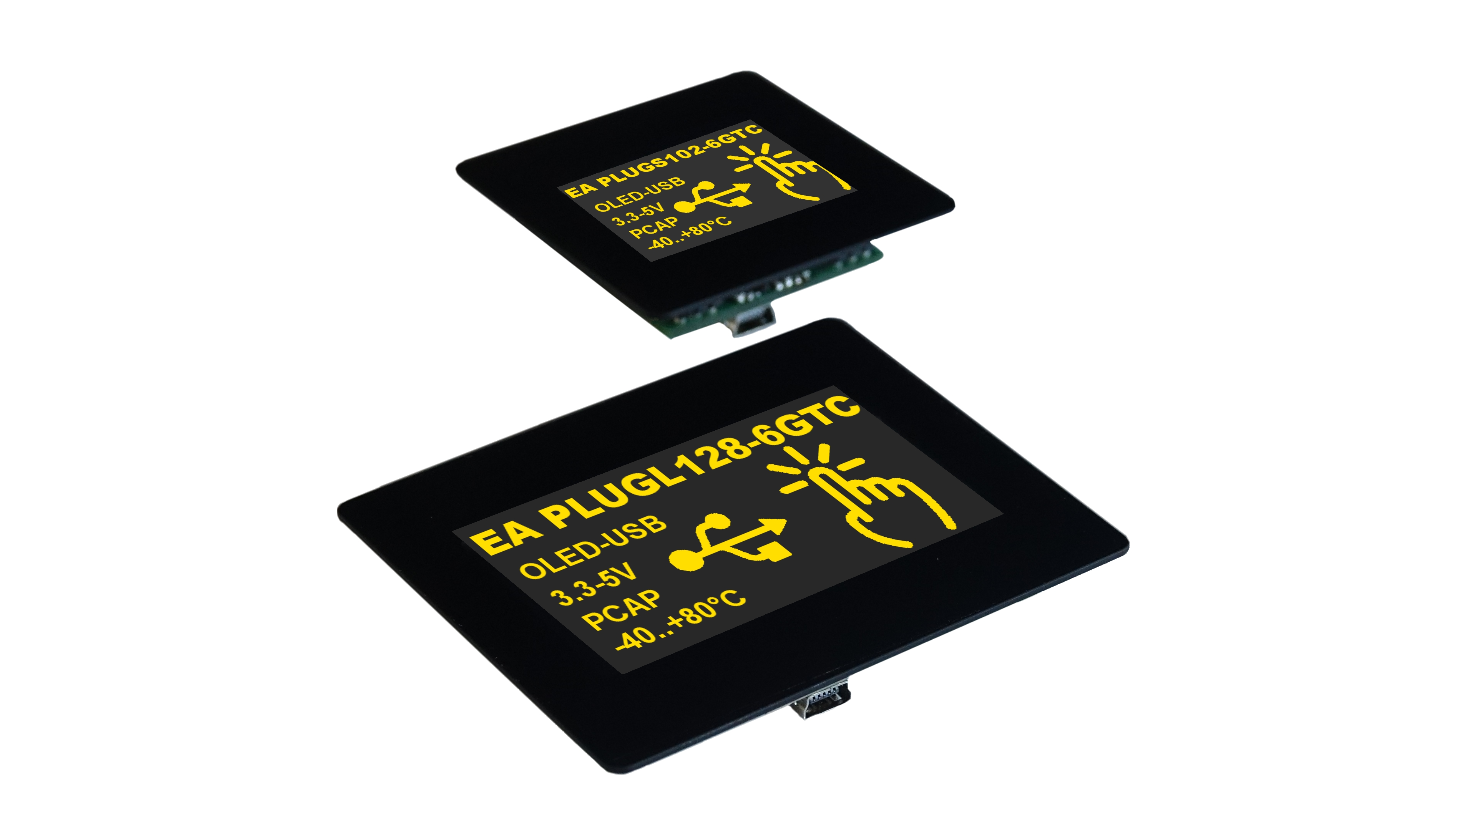 High-contrast OLED displays with USB interface